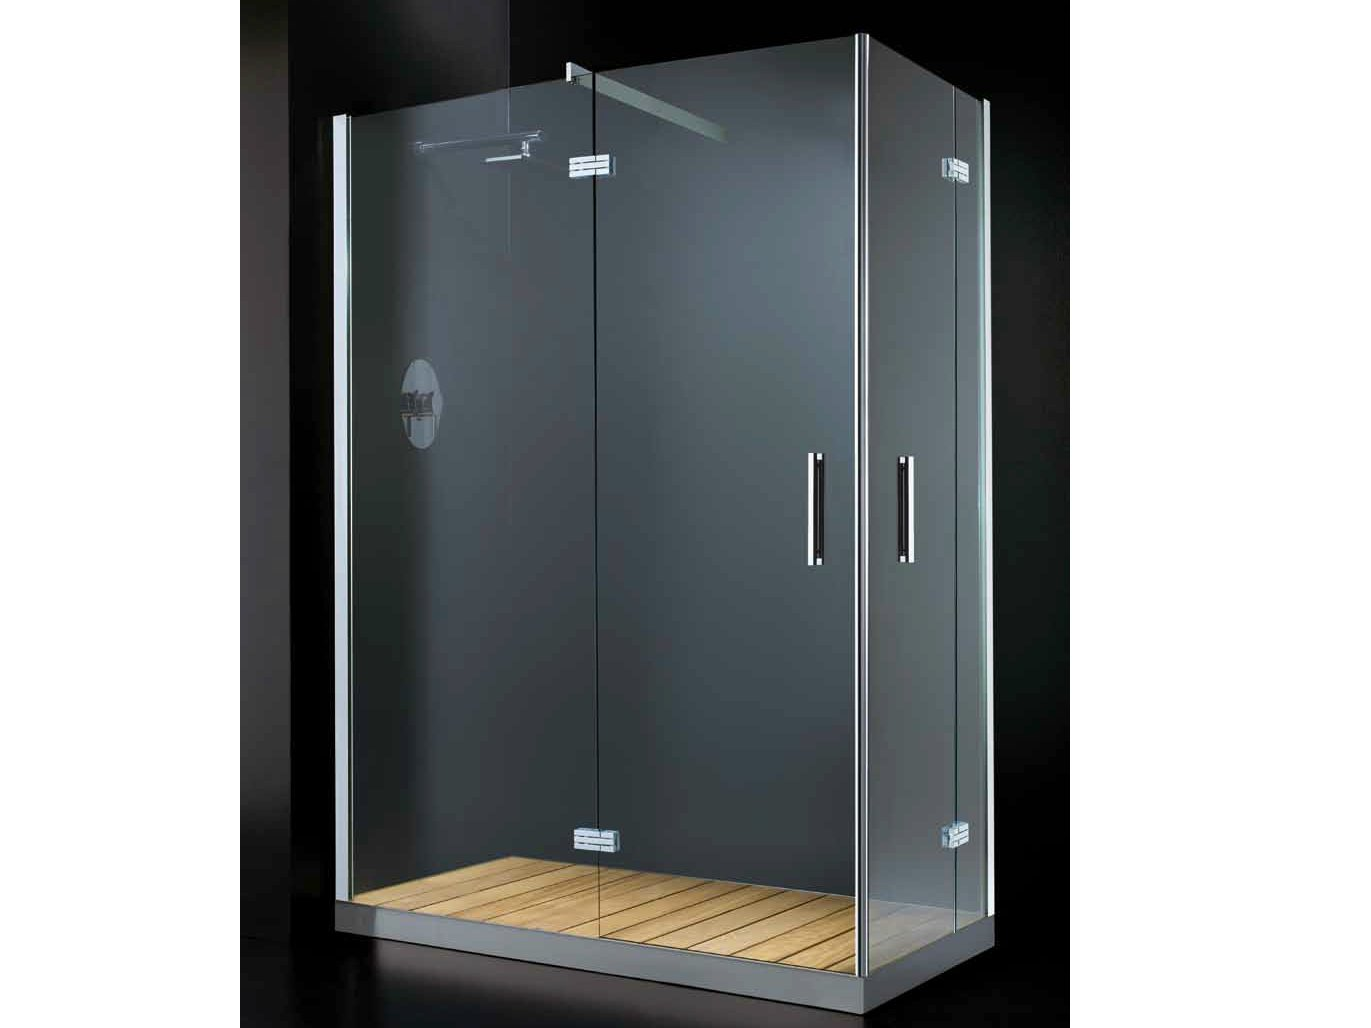 cabine de douche d 39 angle rectangulaire avec porte battante. Black Bedroom Furniture Sets. Home Design Ideas